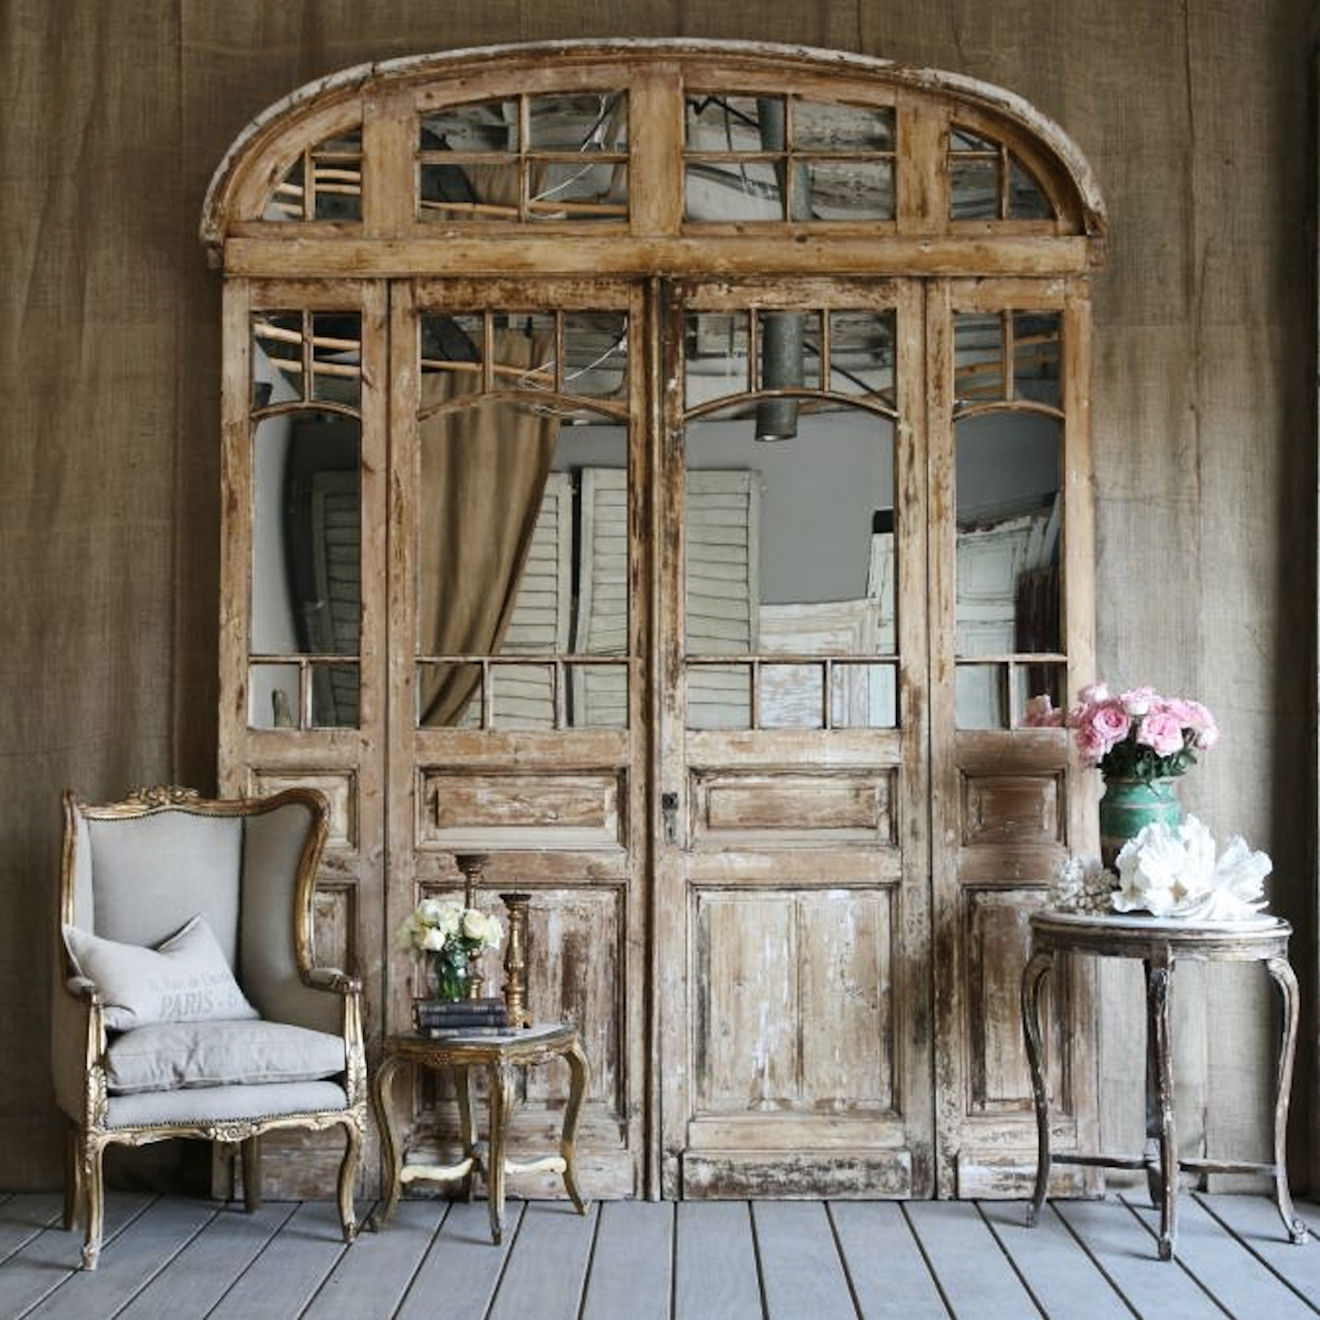 French Doors: Simple Everyday Glamour: January 2011